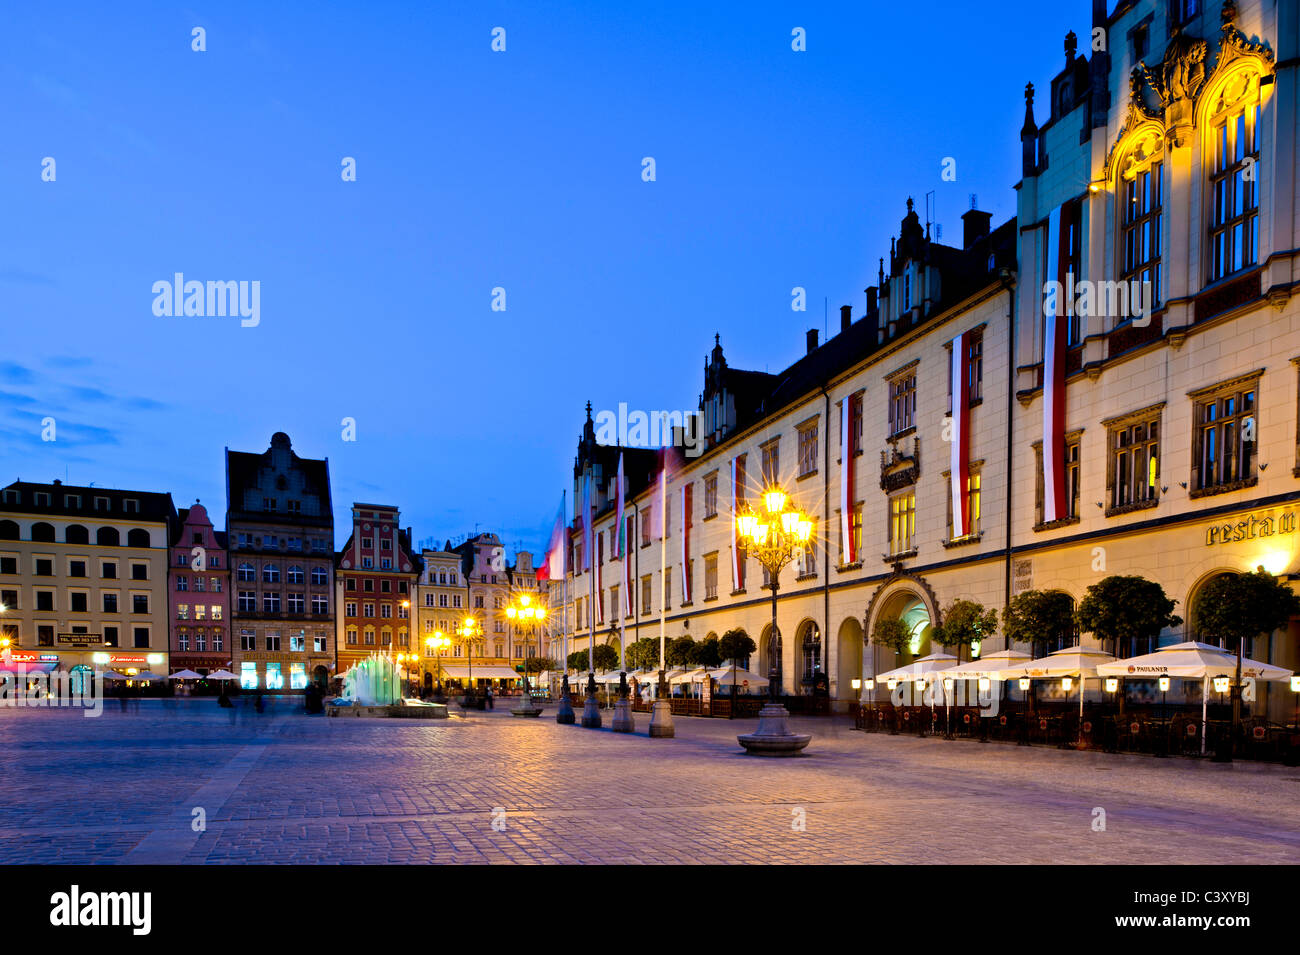 Market Square at dusk, Wroclaw, Poland - Stock Image